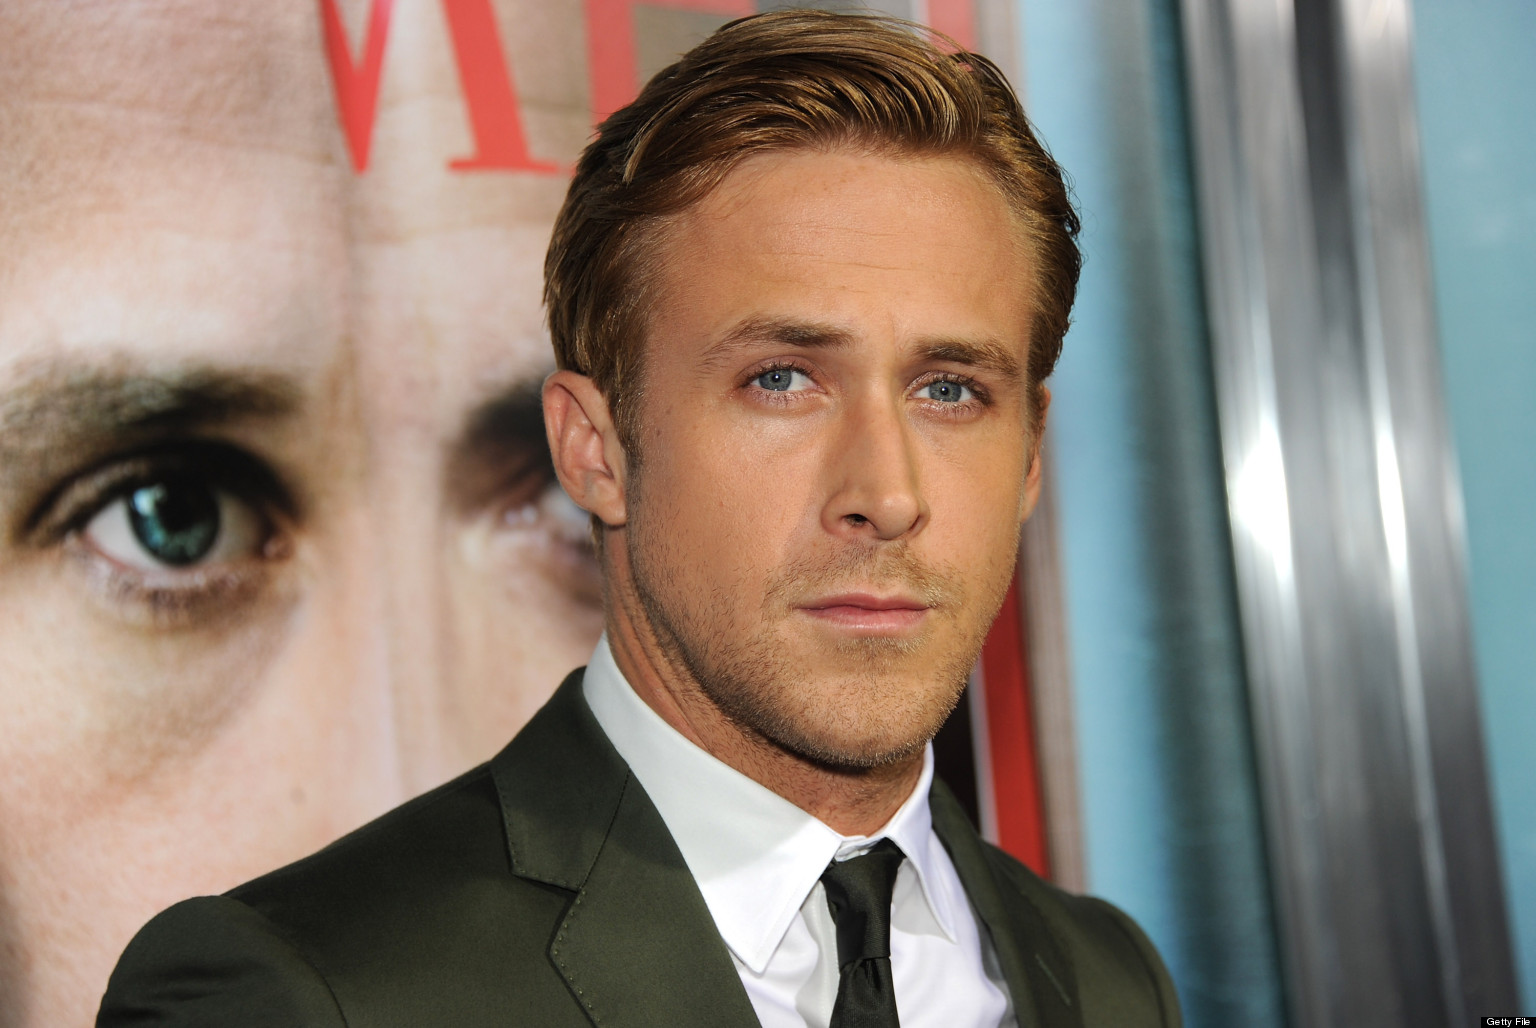 BEVERLY HILLS, CA - SEPTEMBER 27:  Actor Ryan Gosling attends the Premiere of Columbia Pictures'